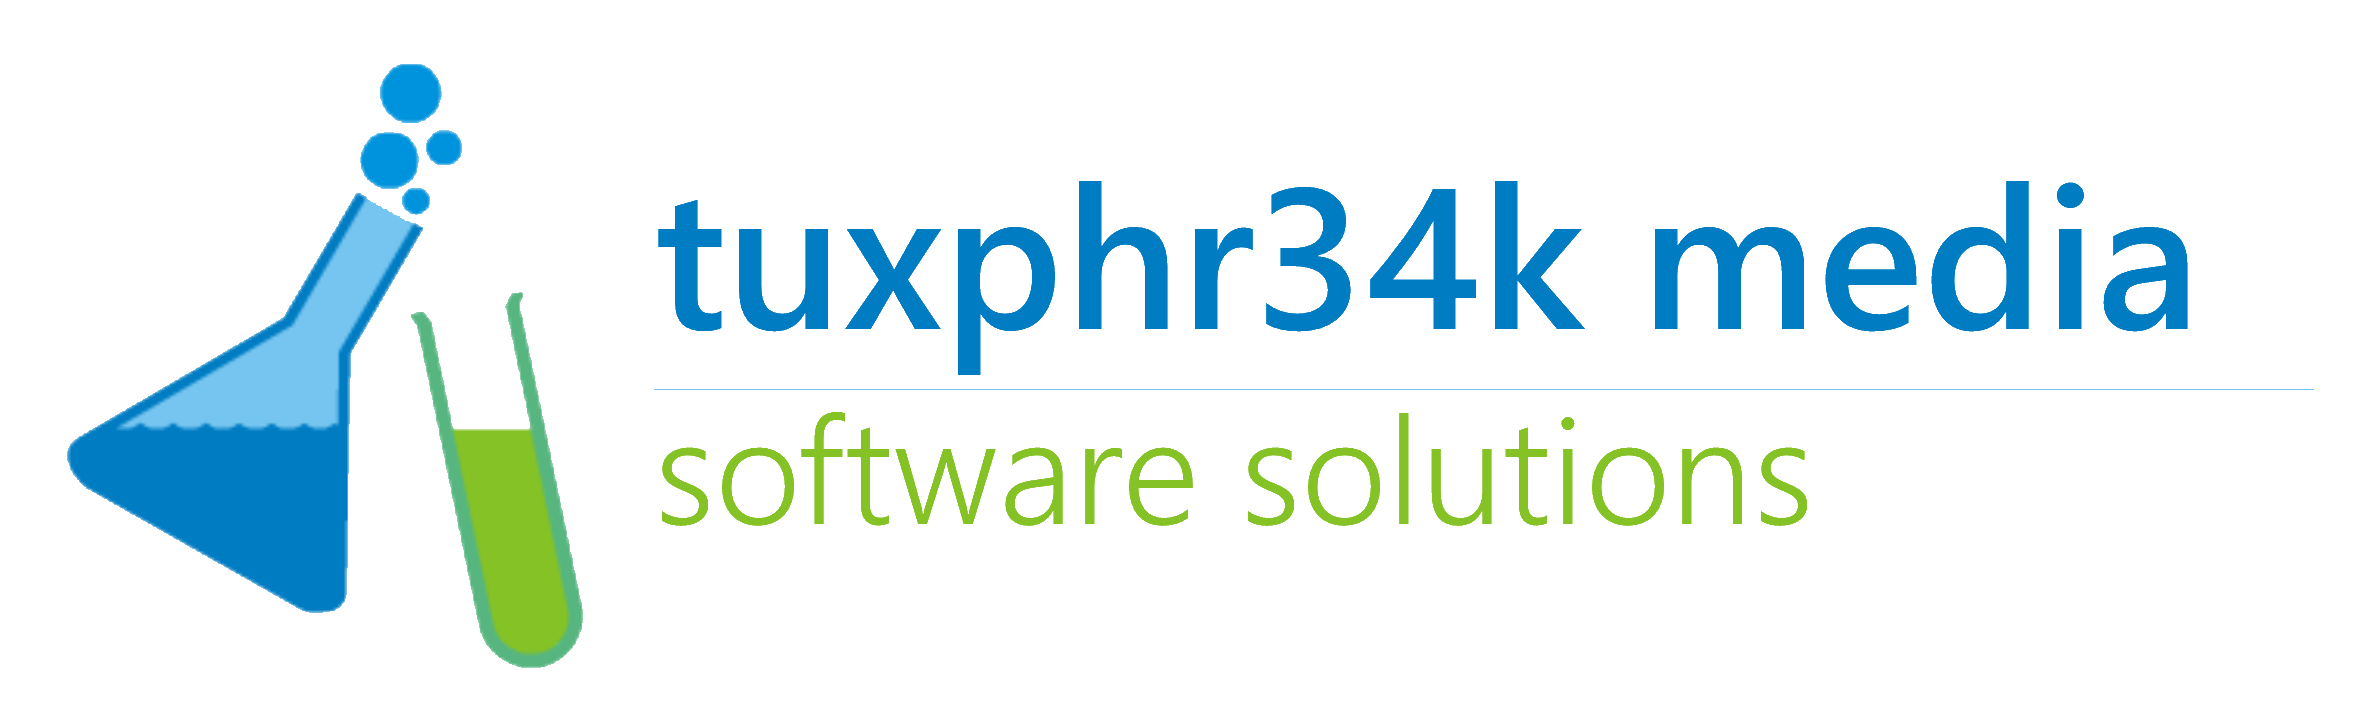 tuxphr34k media software solutions Logo